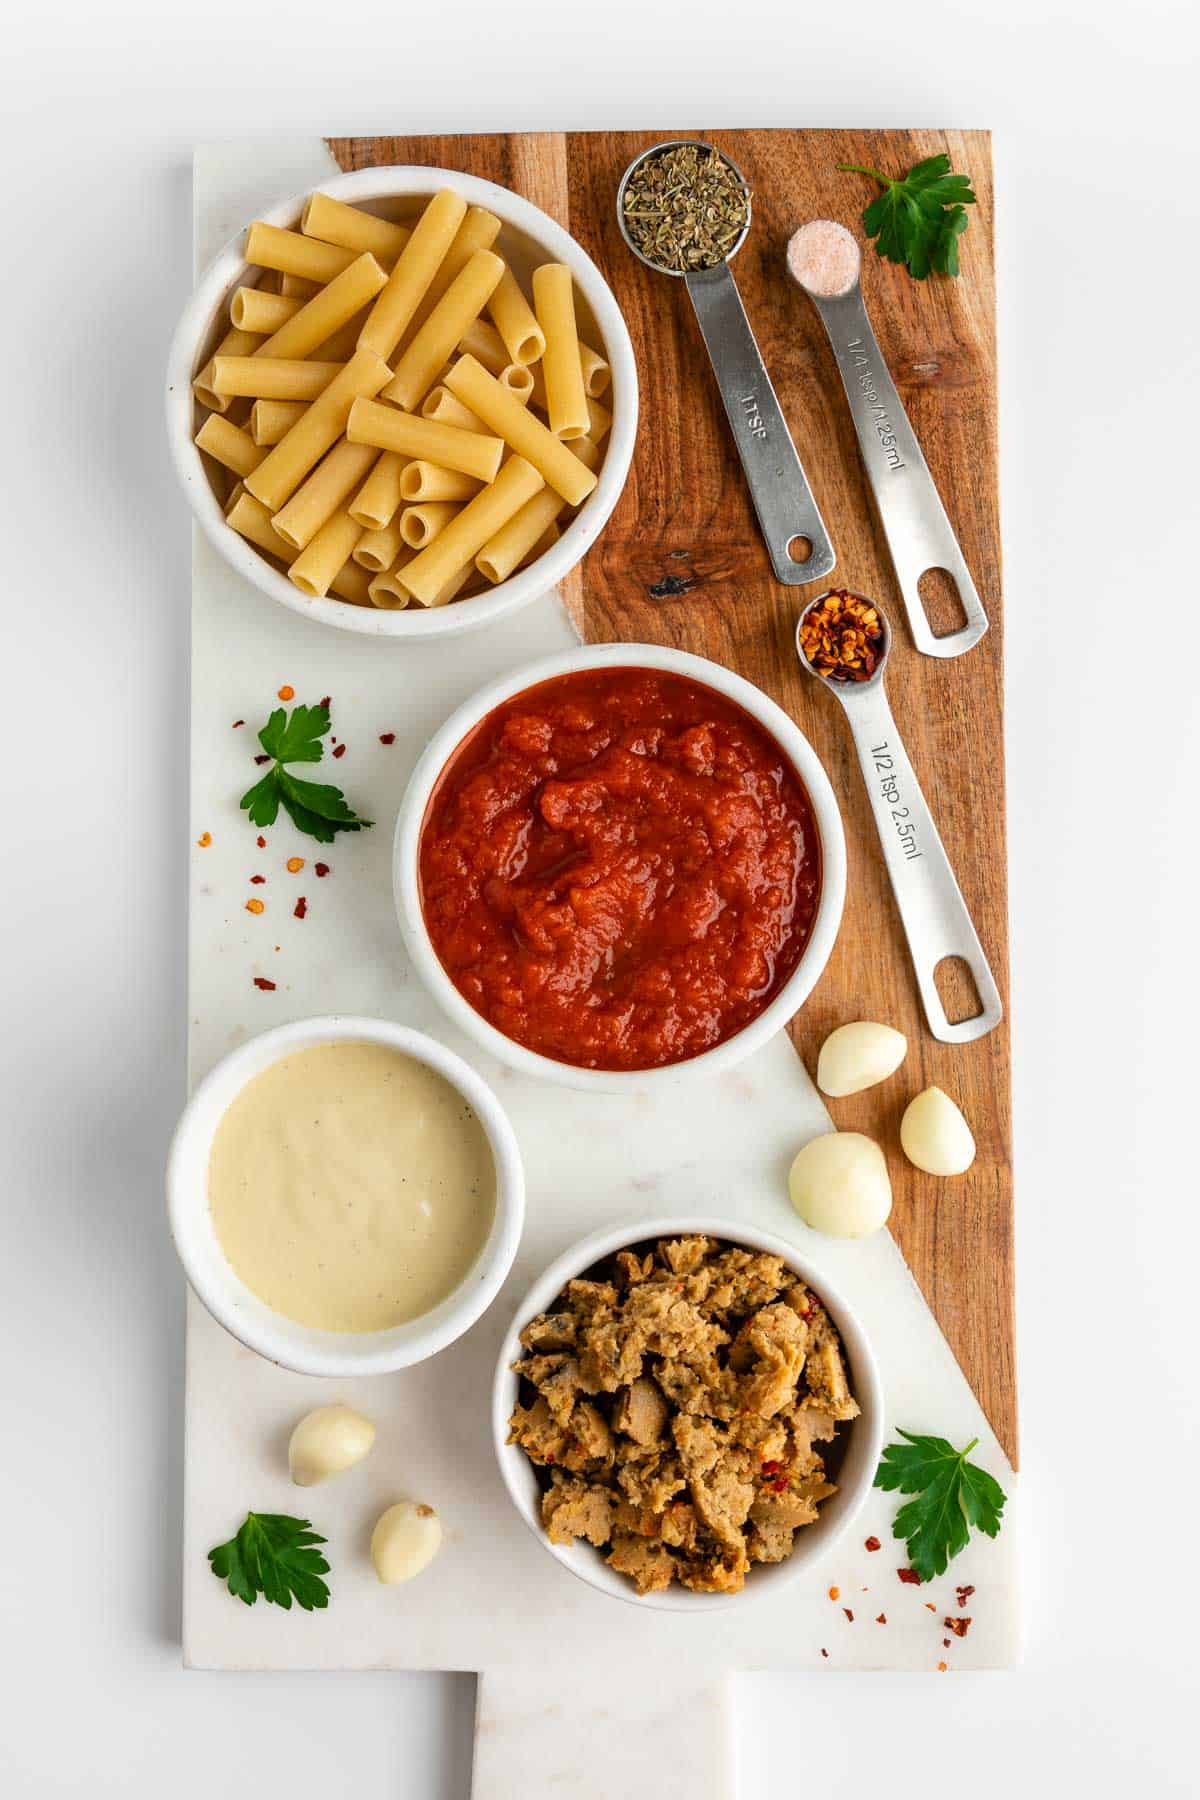 a wood and marble serving board topped with a bowl of marinara sauce, vegan sausage, cashew cream, ziti pasta, garlic cloves, fresh parsley, crushed red pepper flakes, and salt